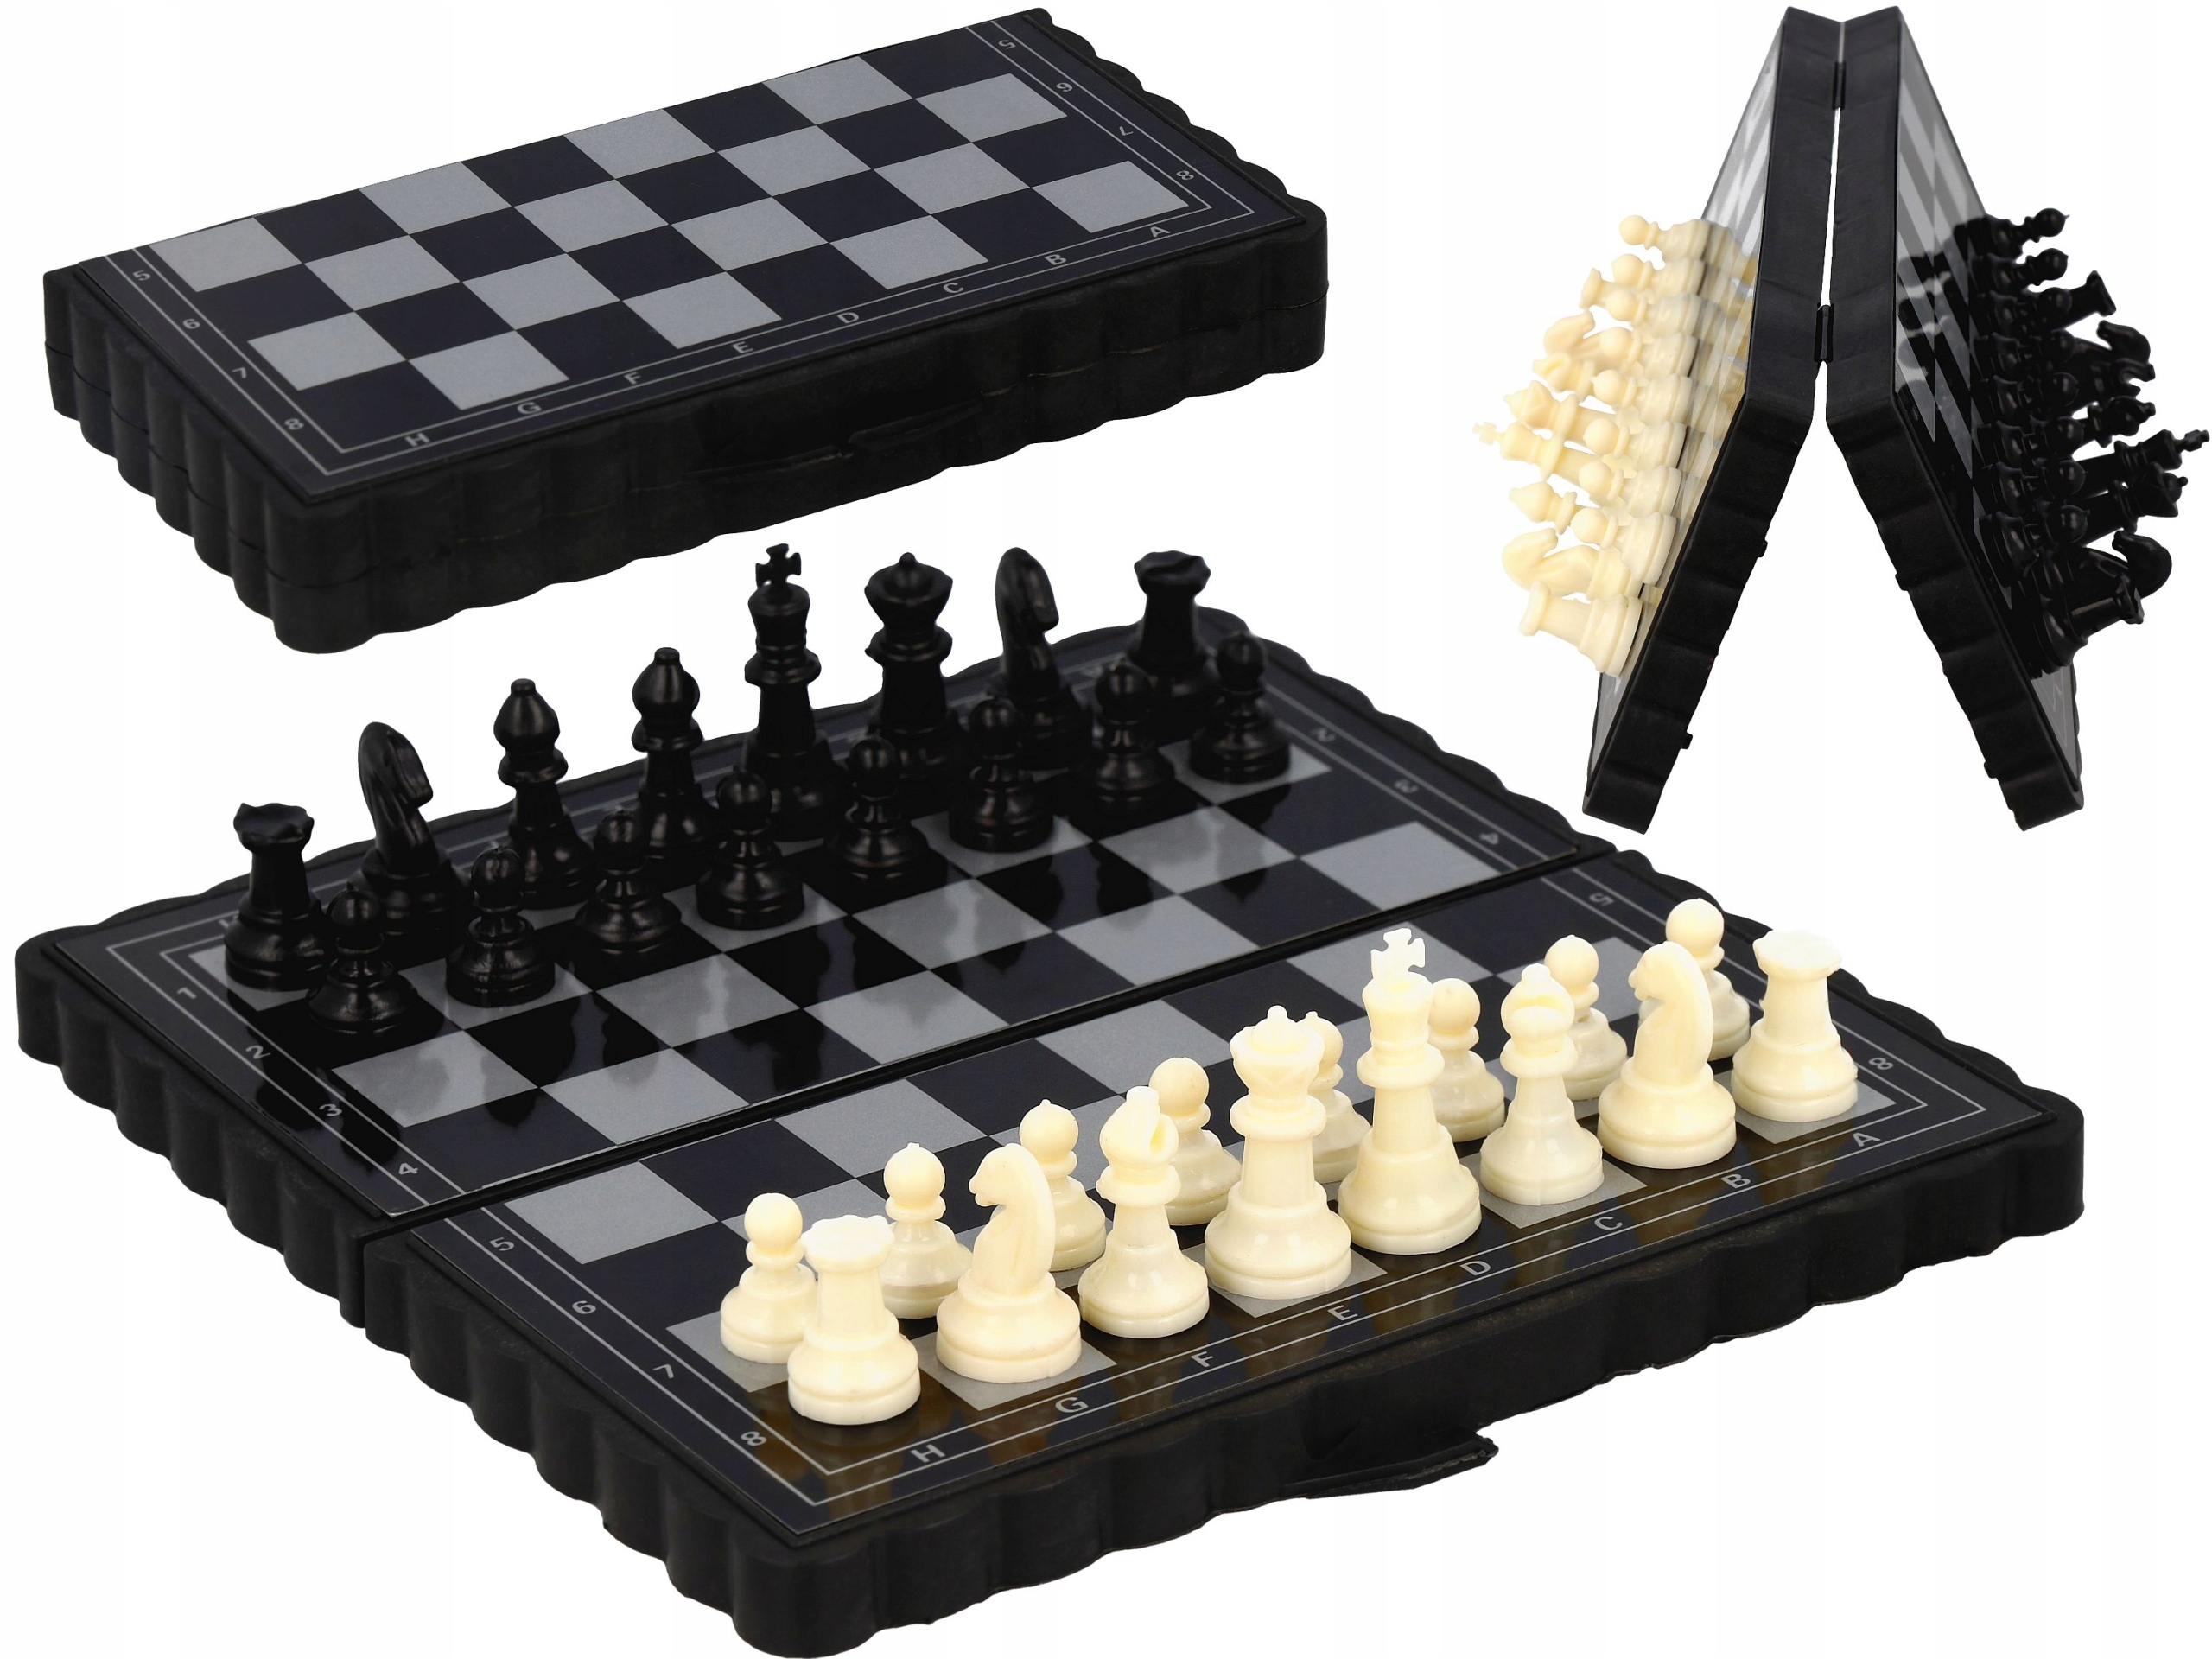 Item MINI CHESS MAGNETIC CHECKERS TRAVEL GIFT